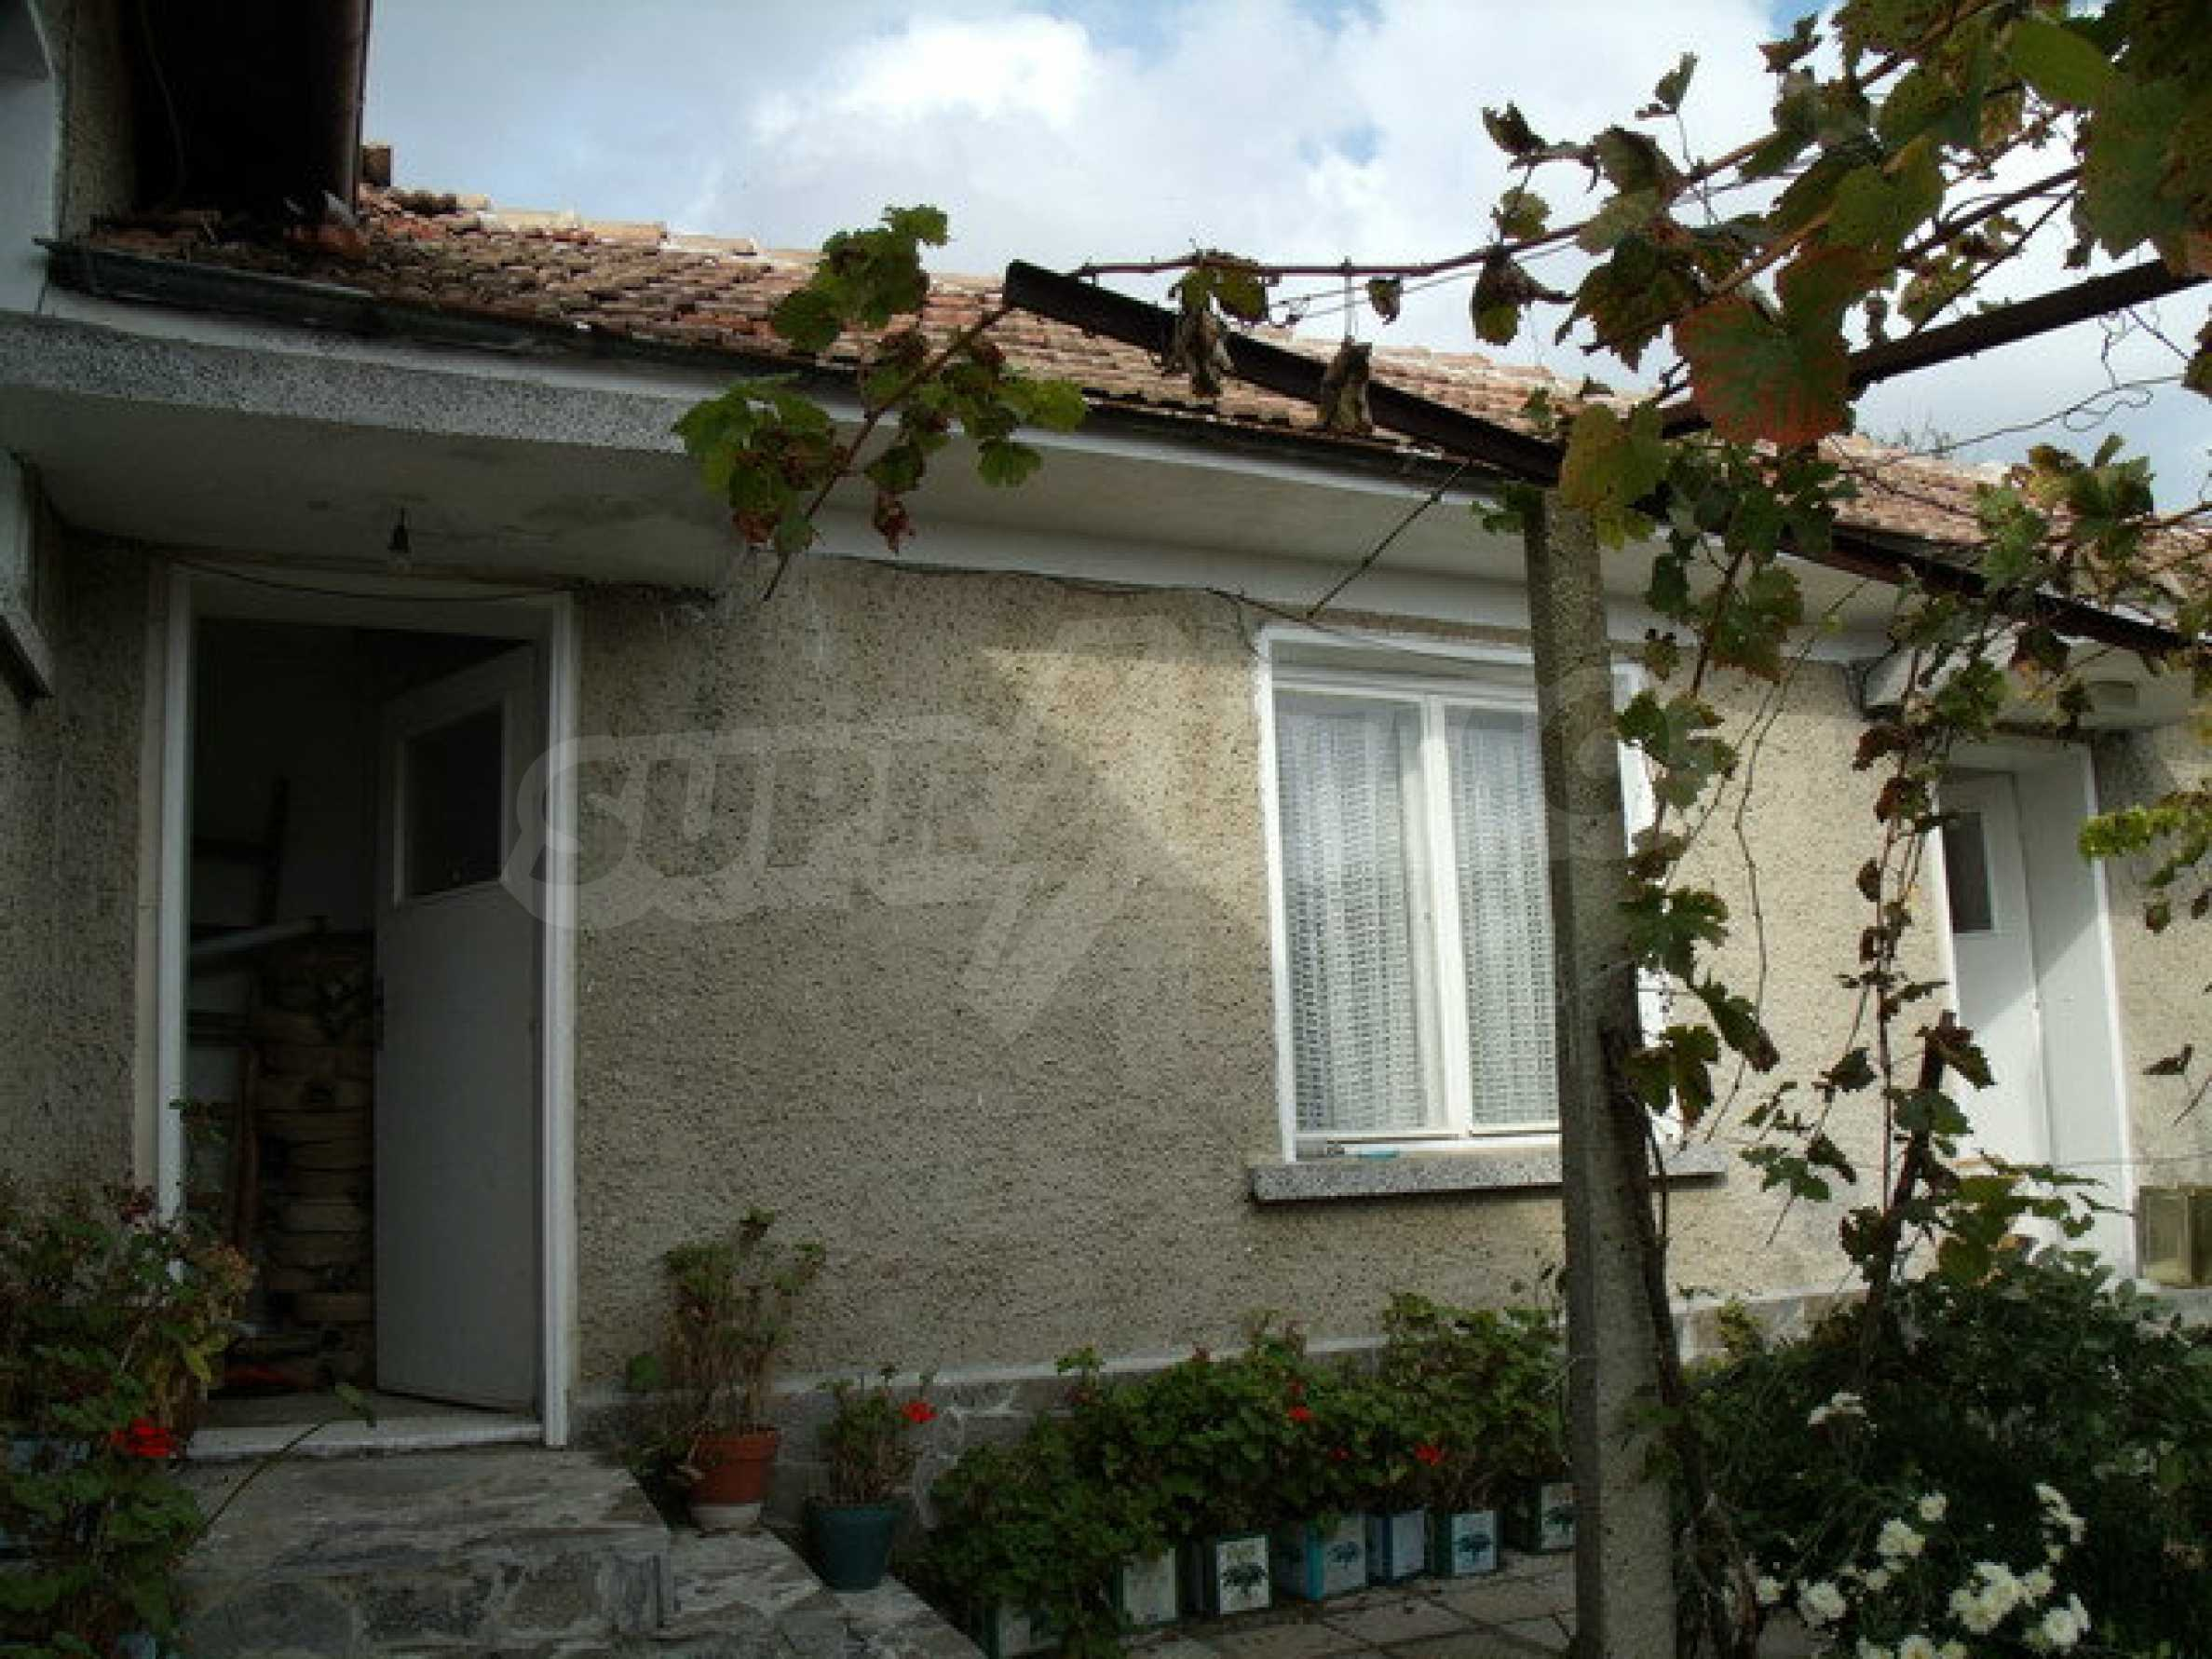 House in a small town, 15 km. from the old capital of Veliko Tarnovo 11